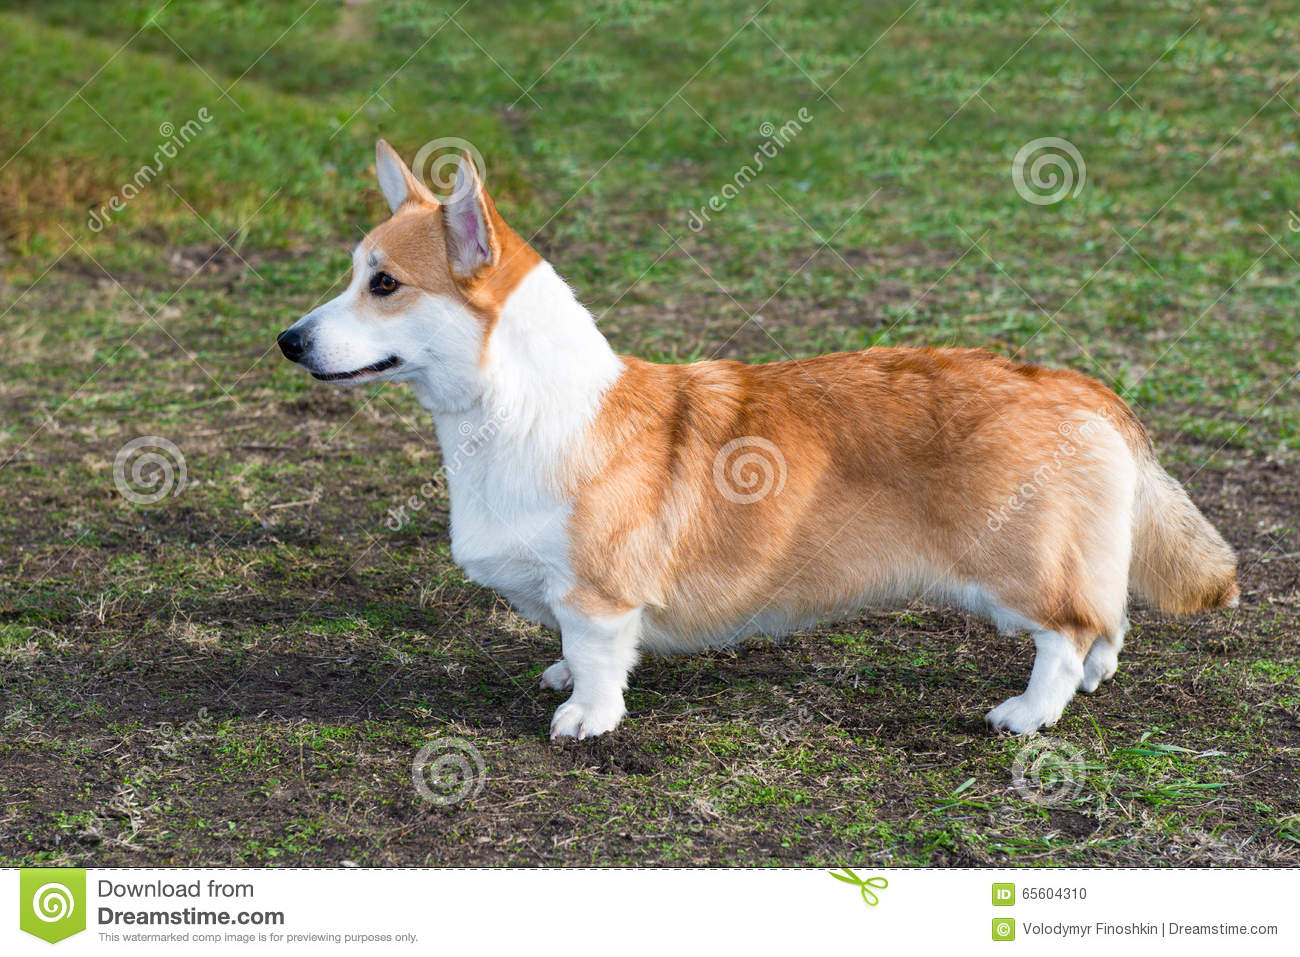 cardigan-welsh-corgi-profile-park-65604310.jpg